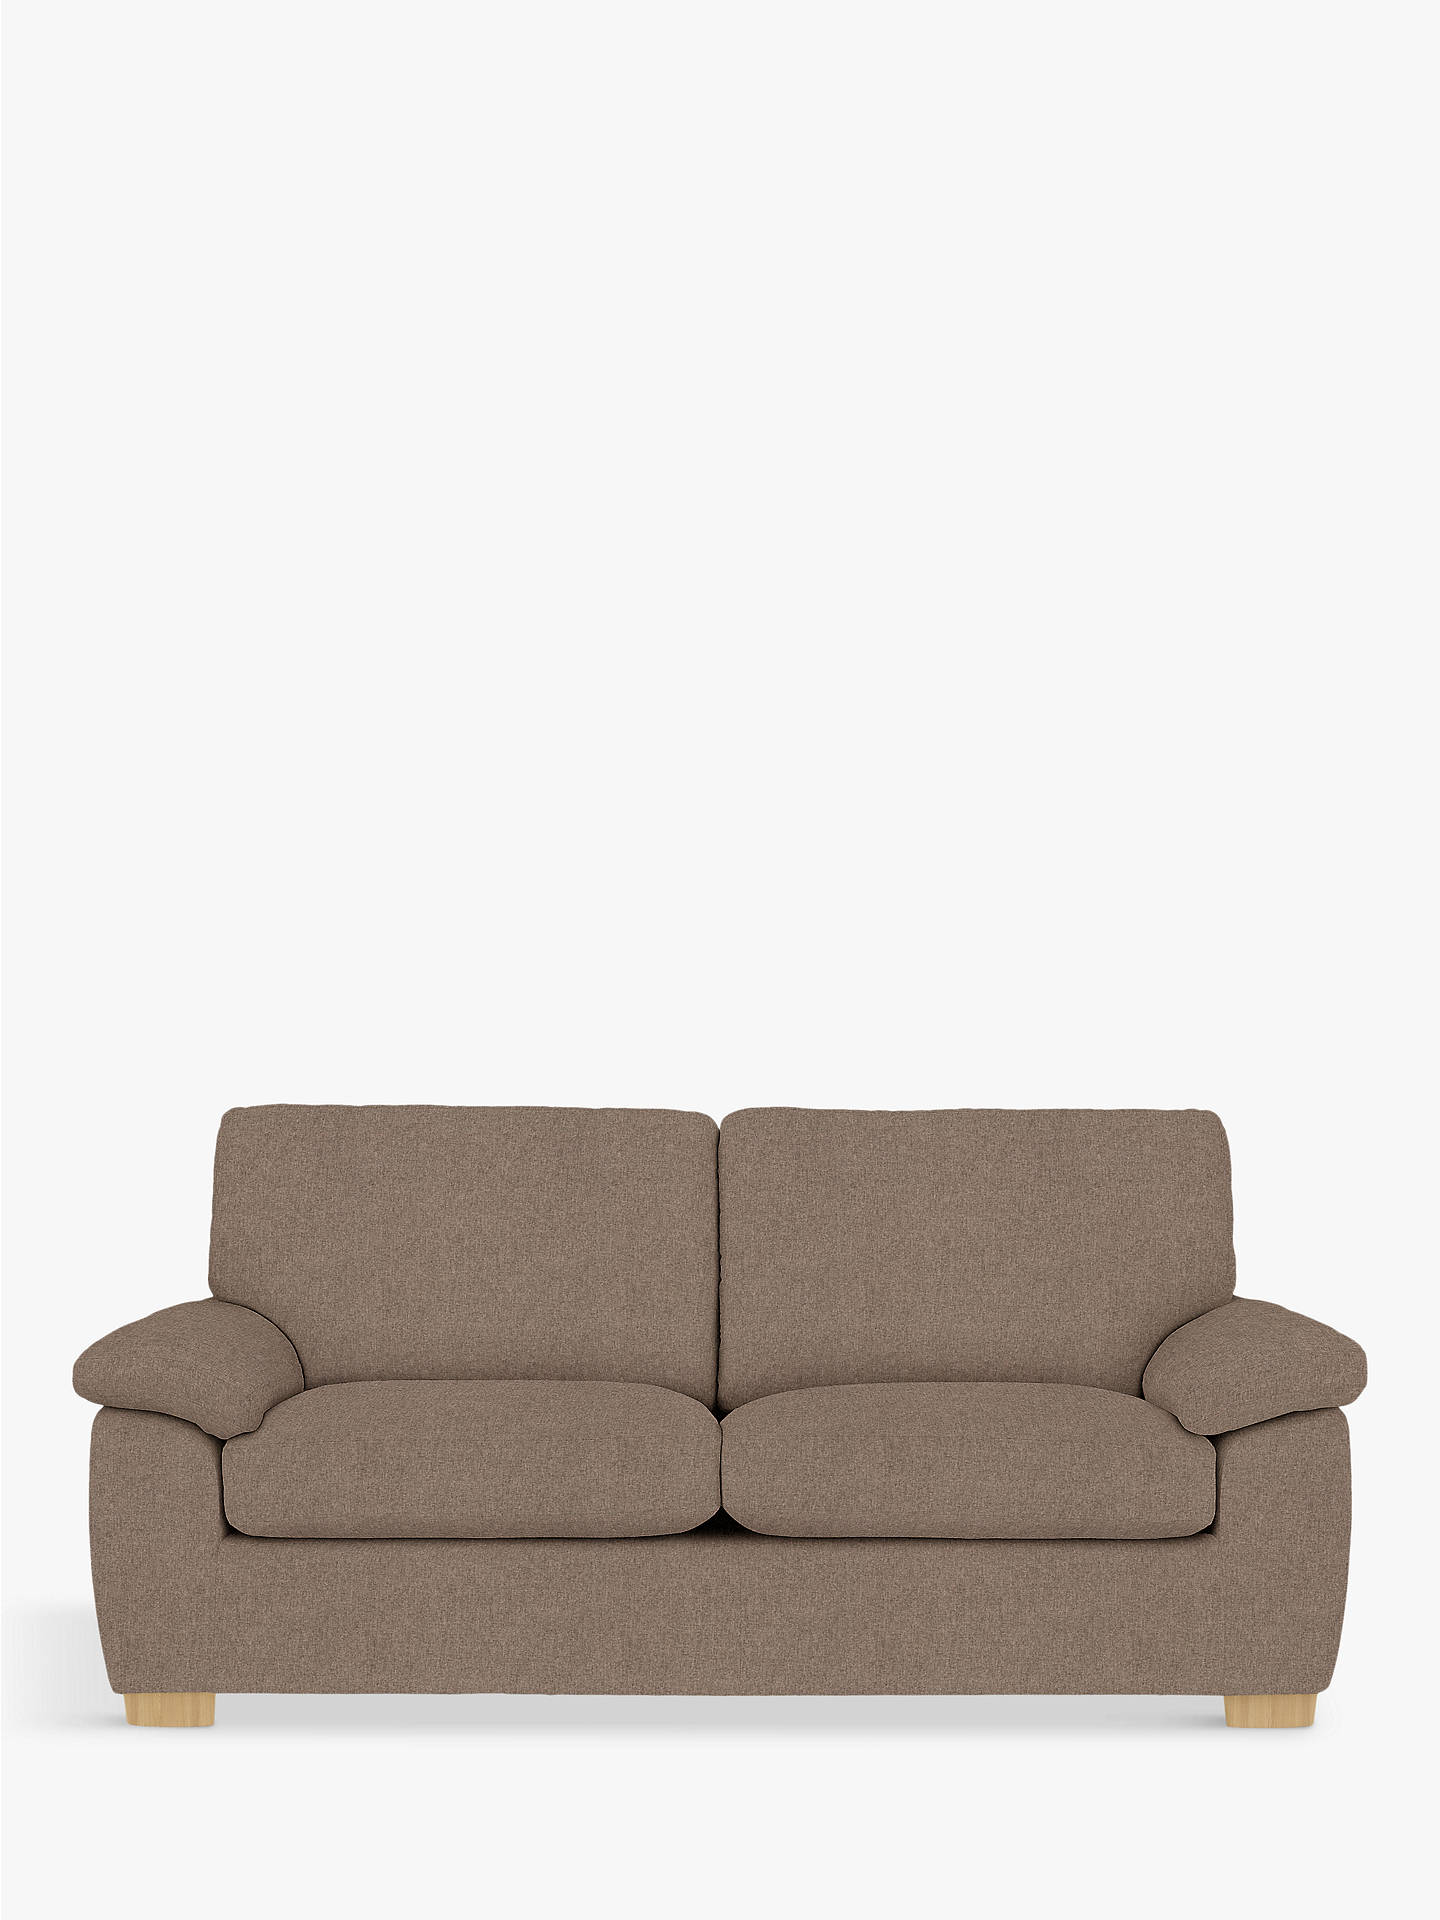 Buy John Lewis & Partners Camden Large 3 Seater Sofa, Light Leg, Dylan Natural Online at johnlewis.com